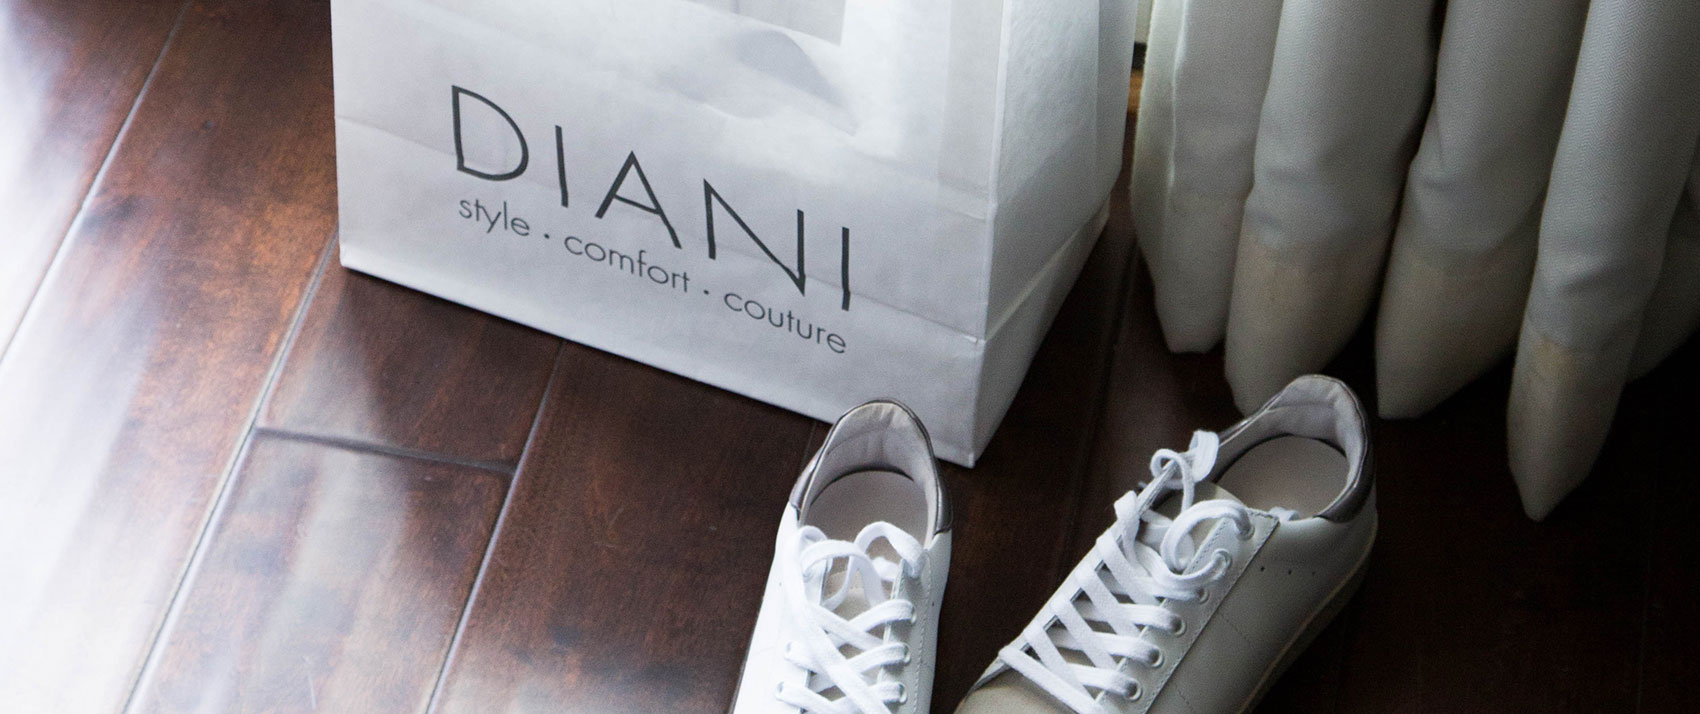 Diani Bag and Shoes